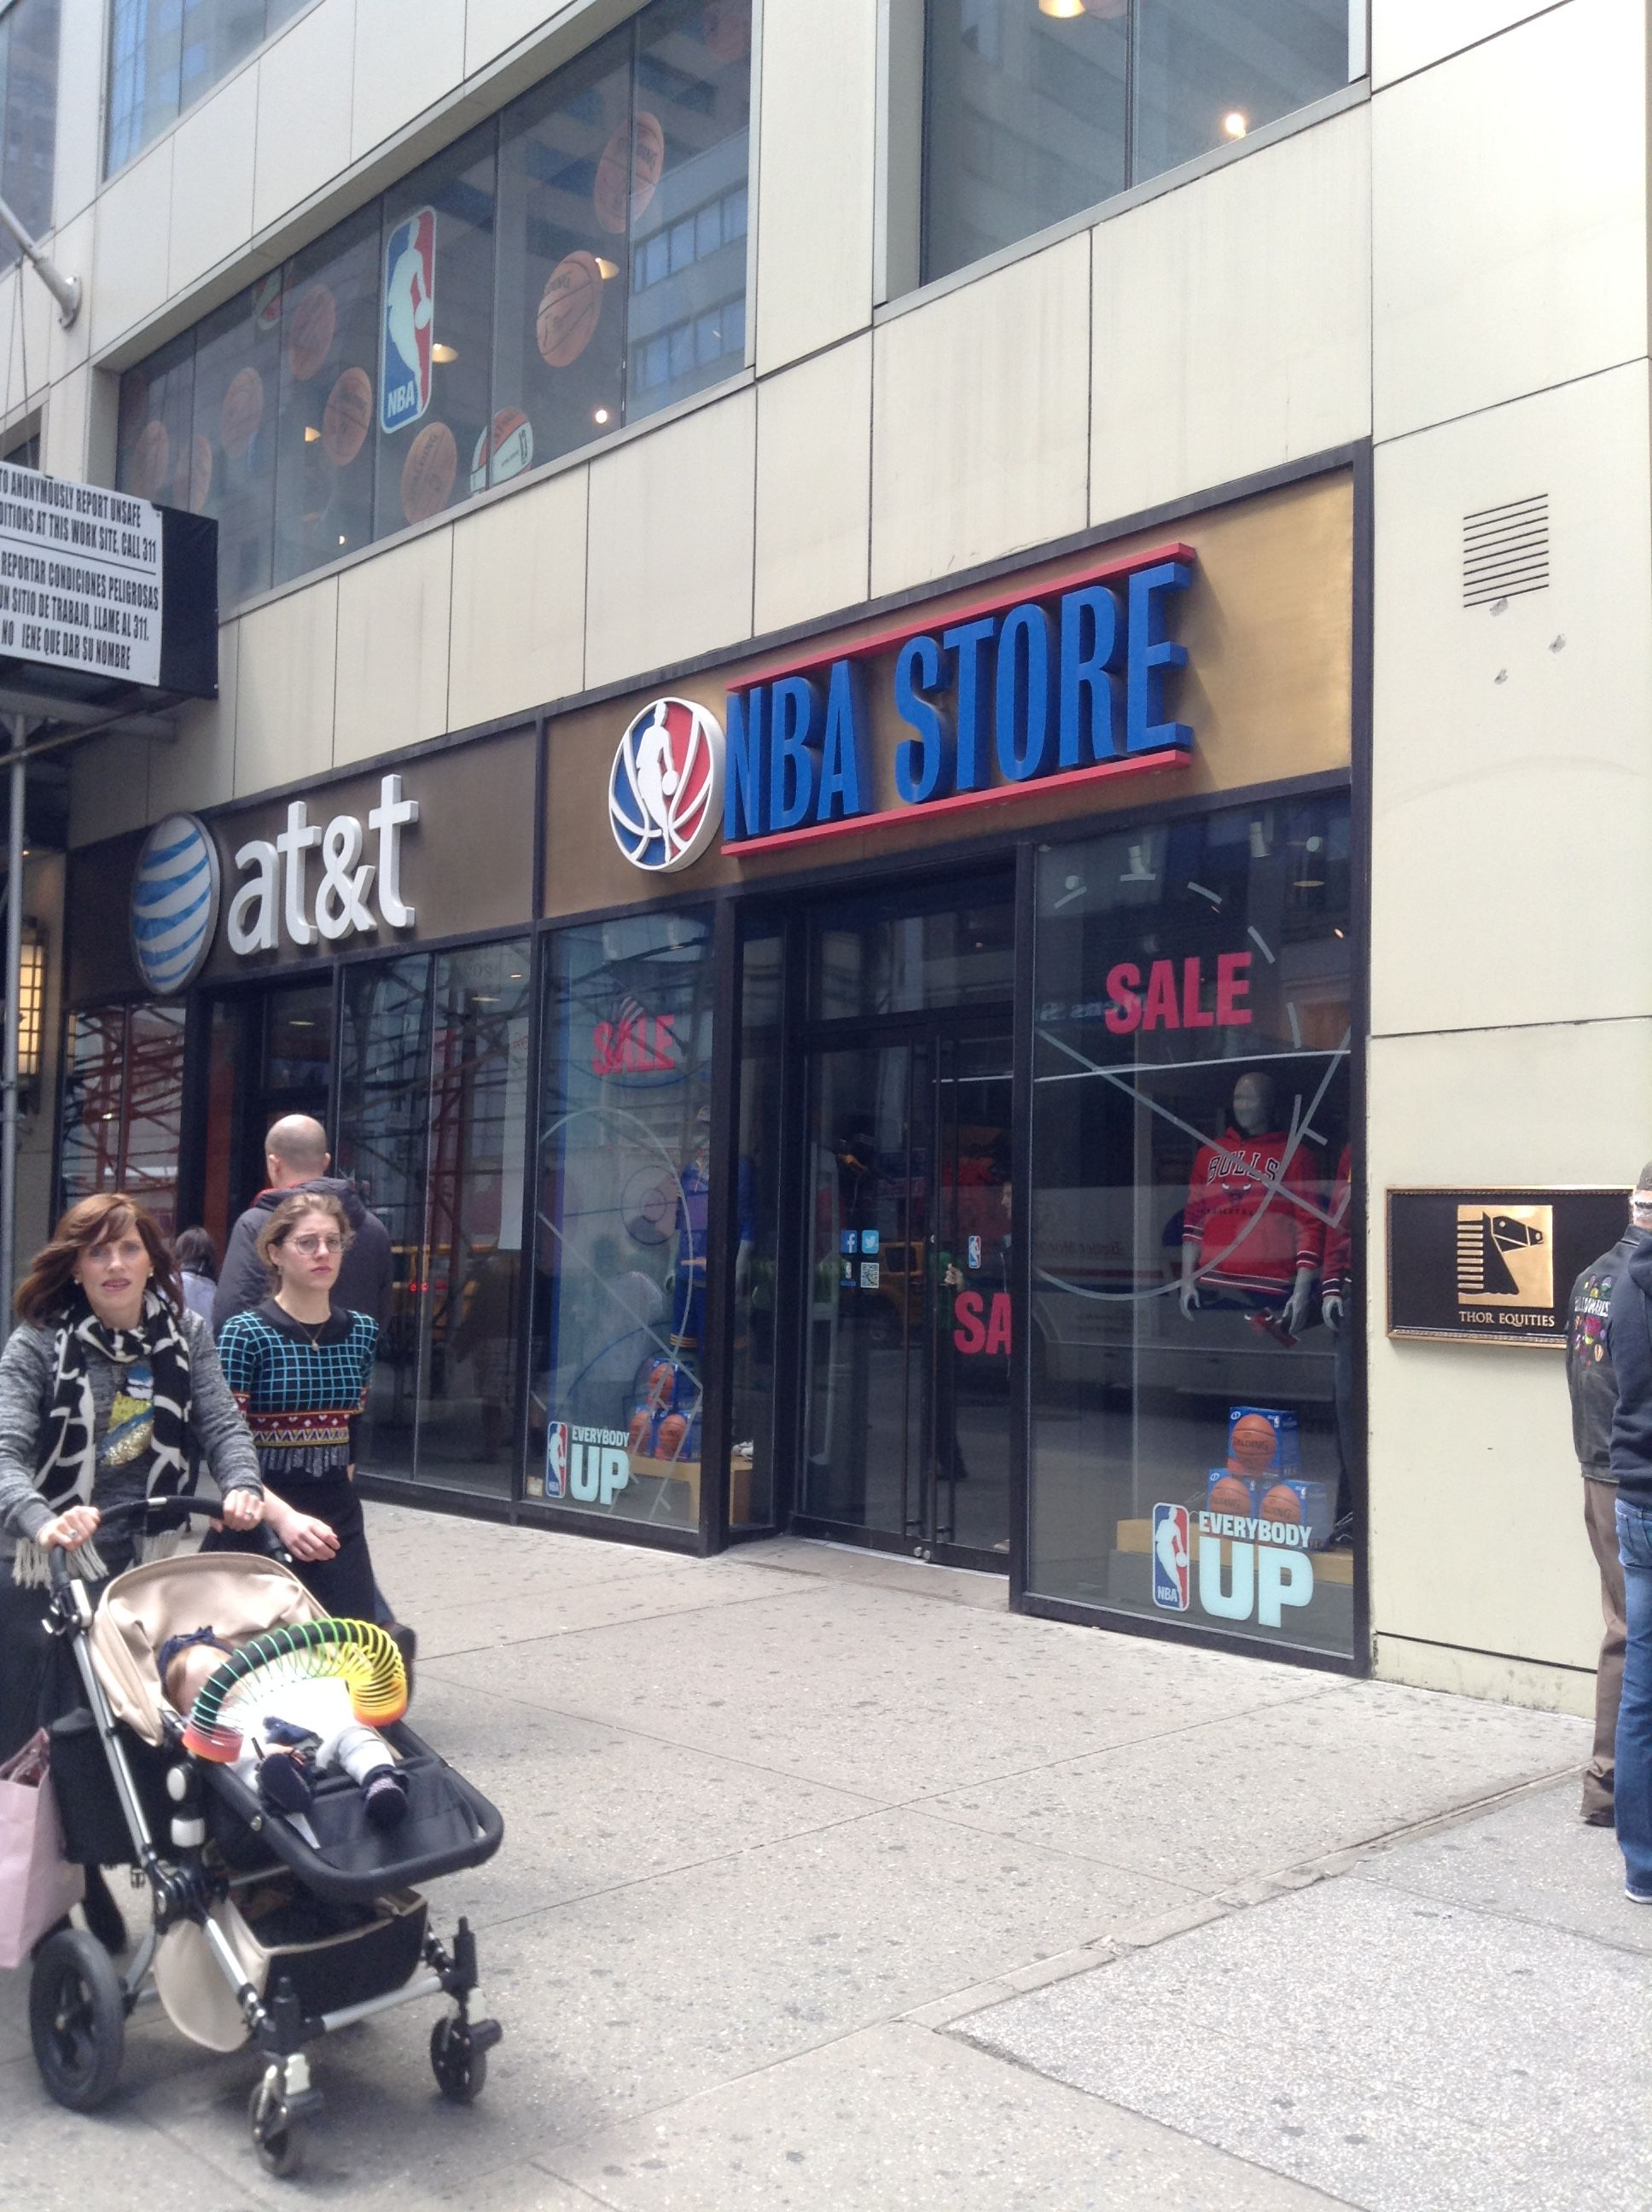 NBA STORE at 48th Street and Fifth Ave in Manhattan / Tienda de la NBA en Manhattan localizada en la calle 48 y la quinta avenida